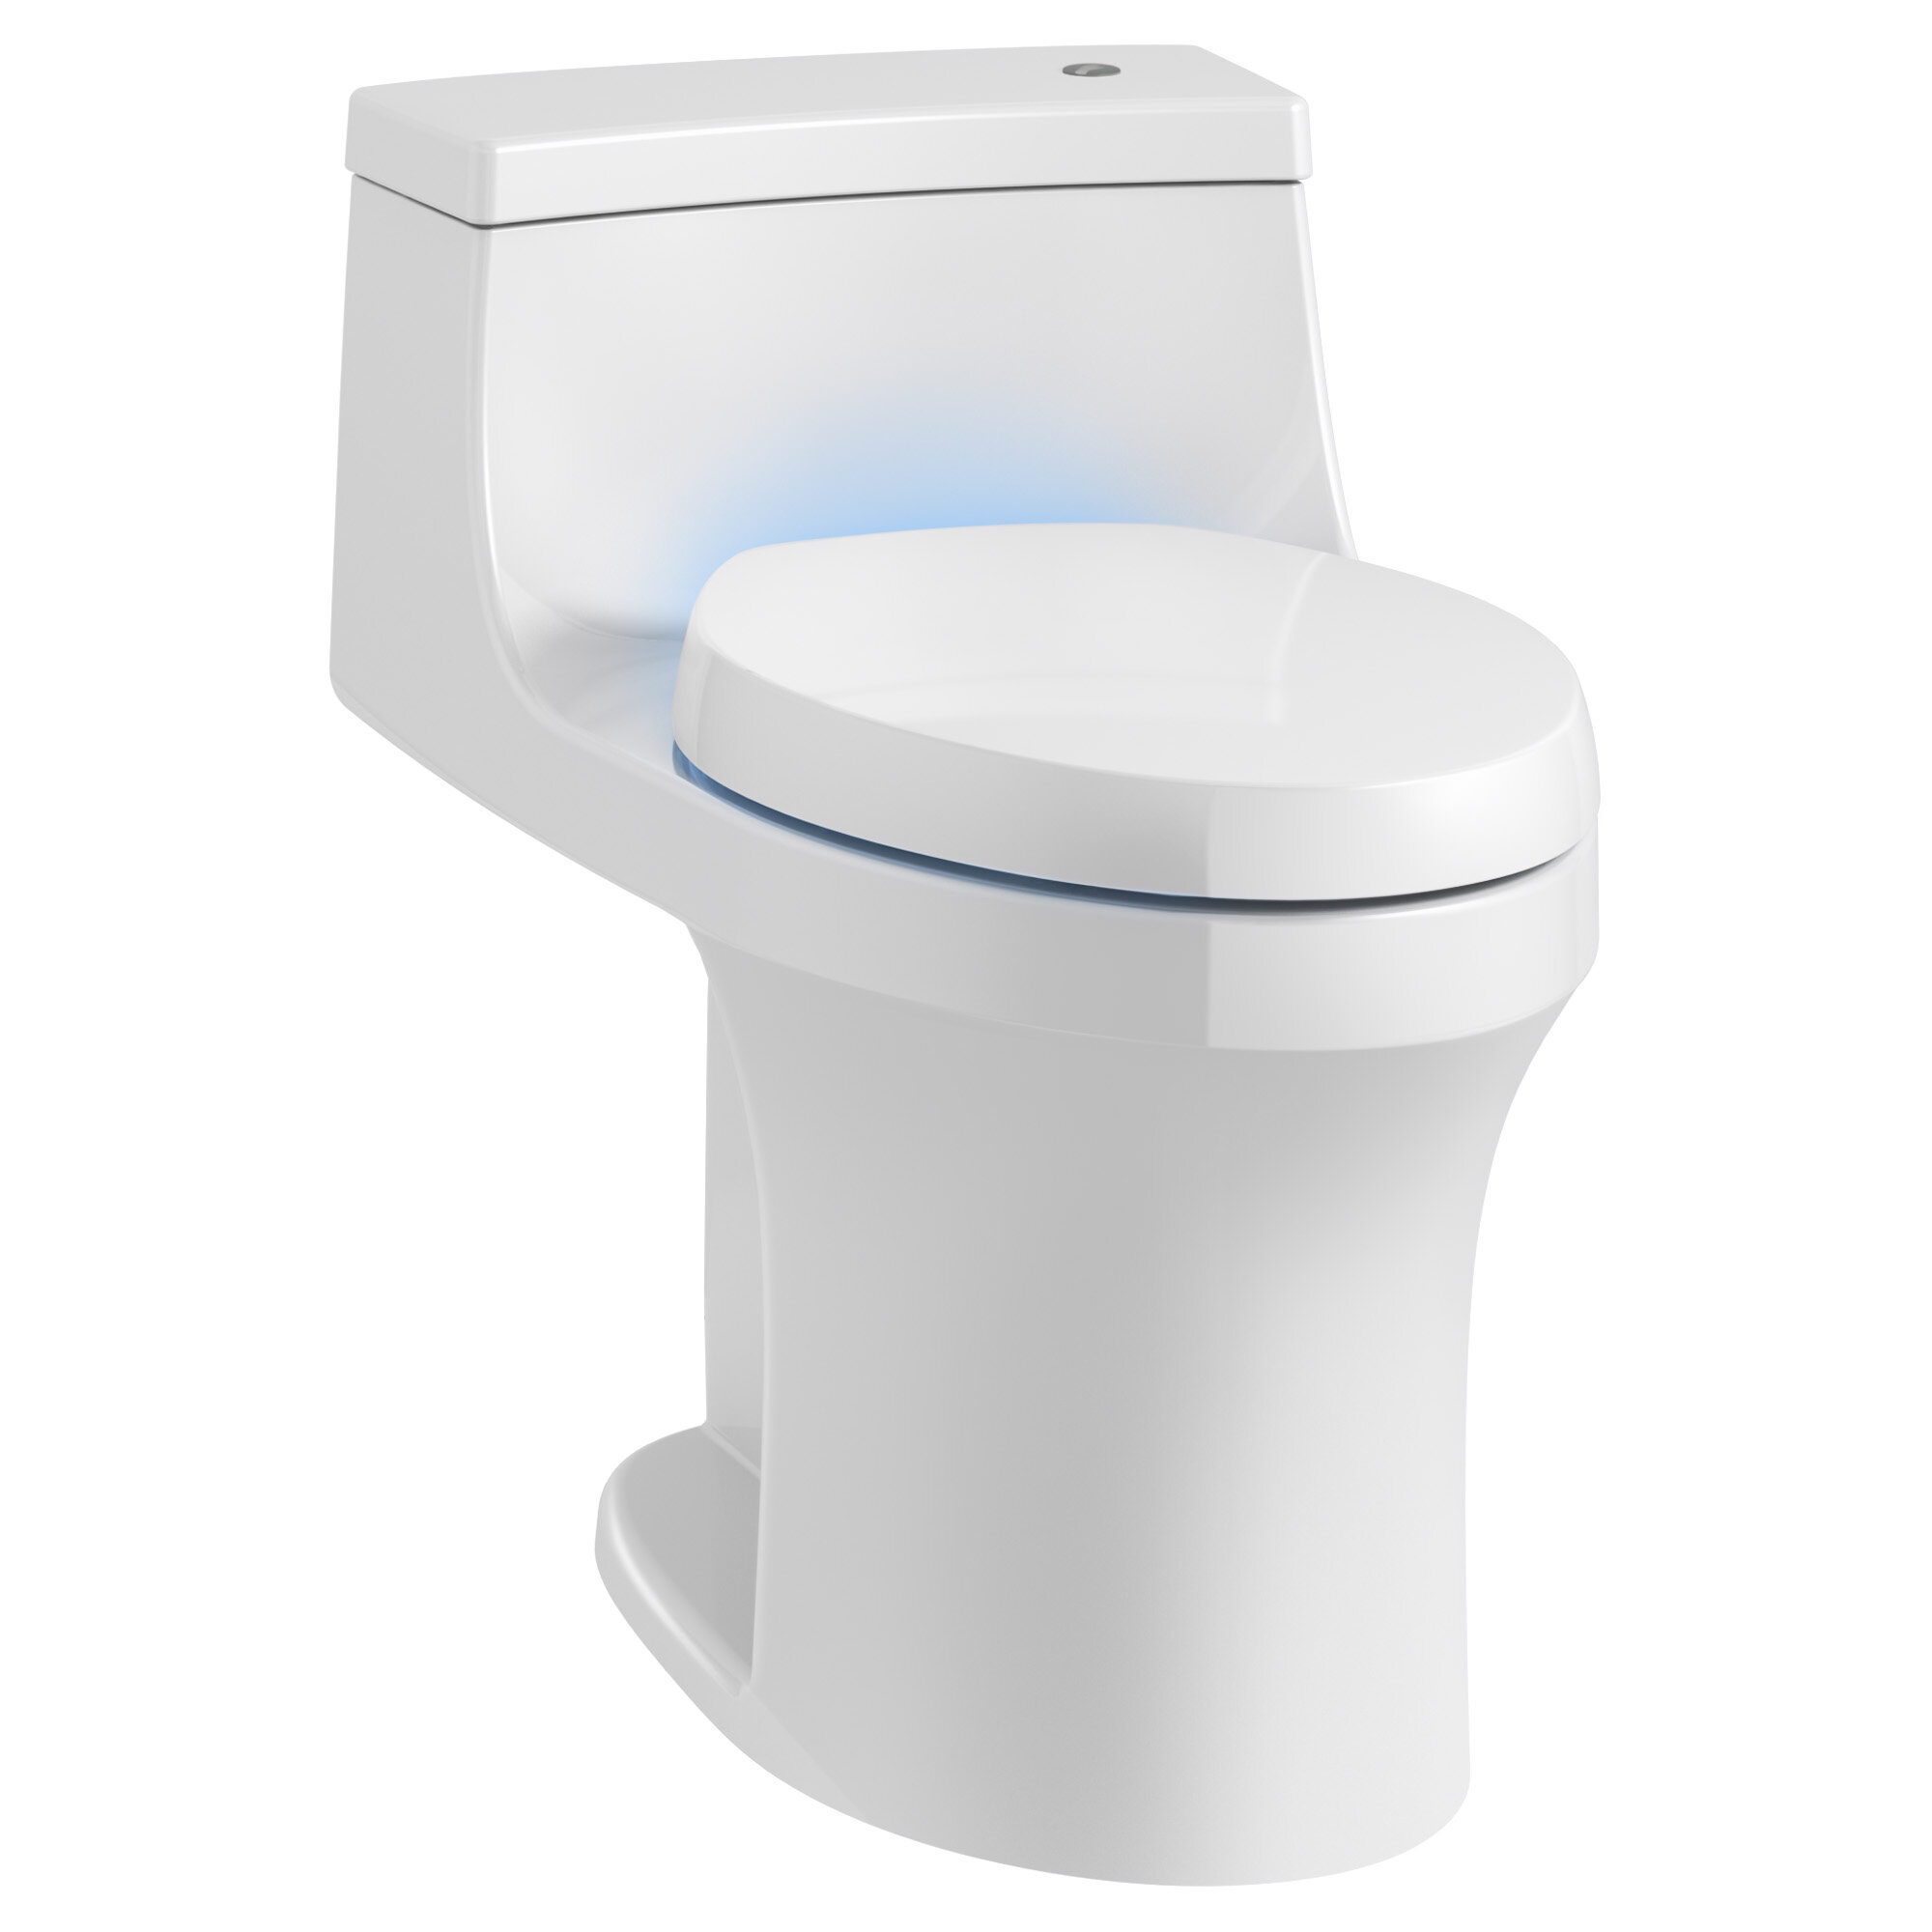 91a933e3fc7 San Souci Souci Touchless with Purefresh Comfort Height 1-Piece Compact  Elongated 1.28 GPF Toilet with Aquapiston Flushing Technology   Reviews